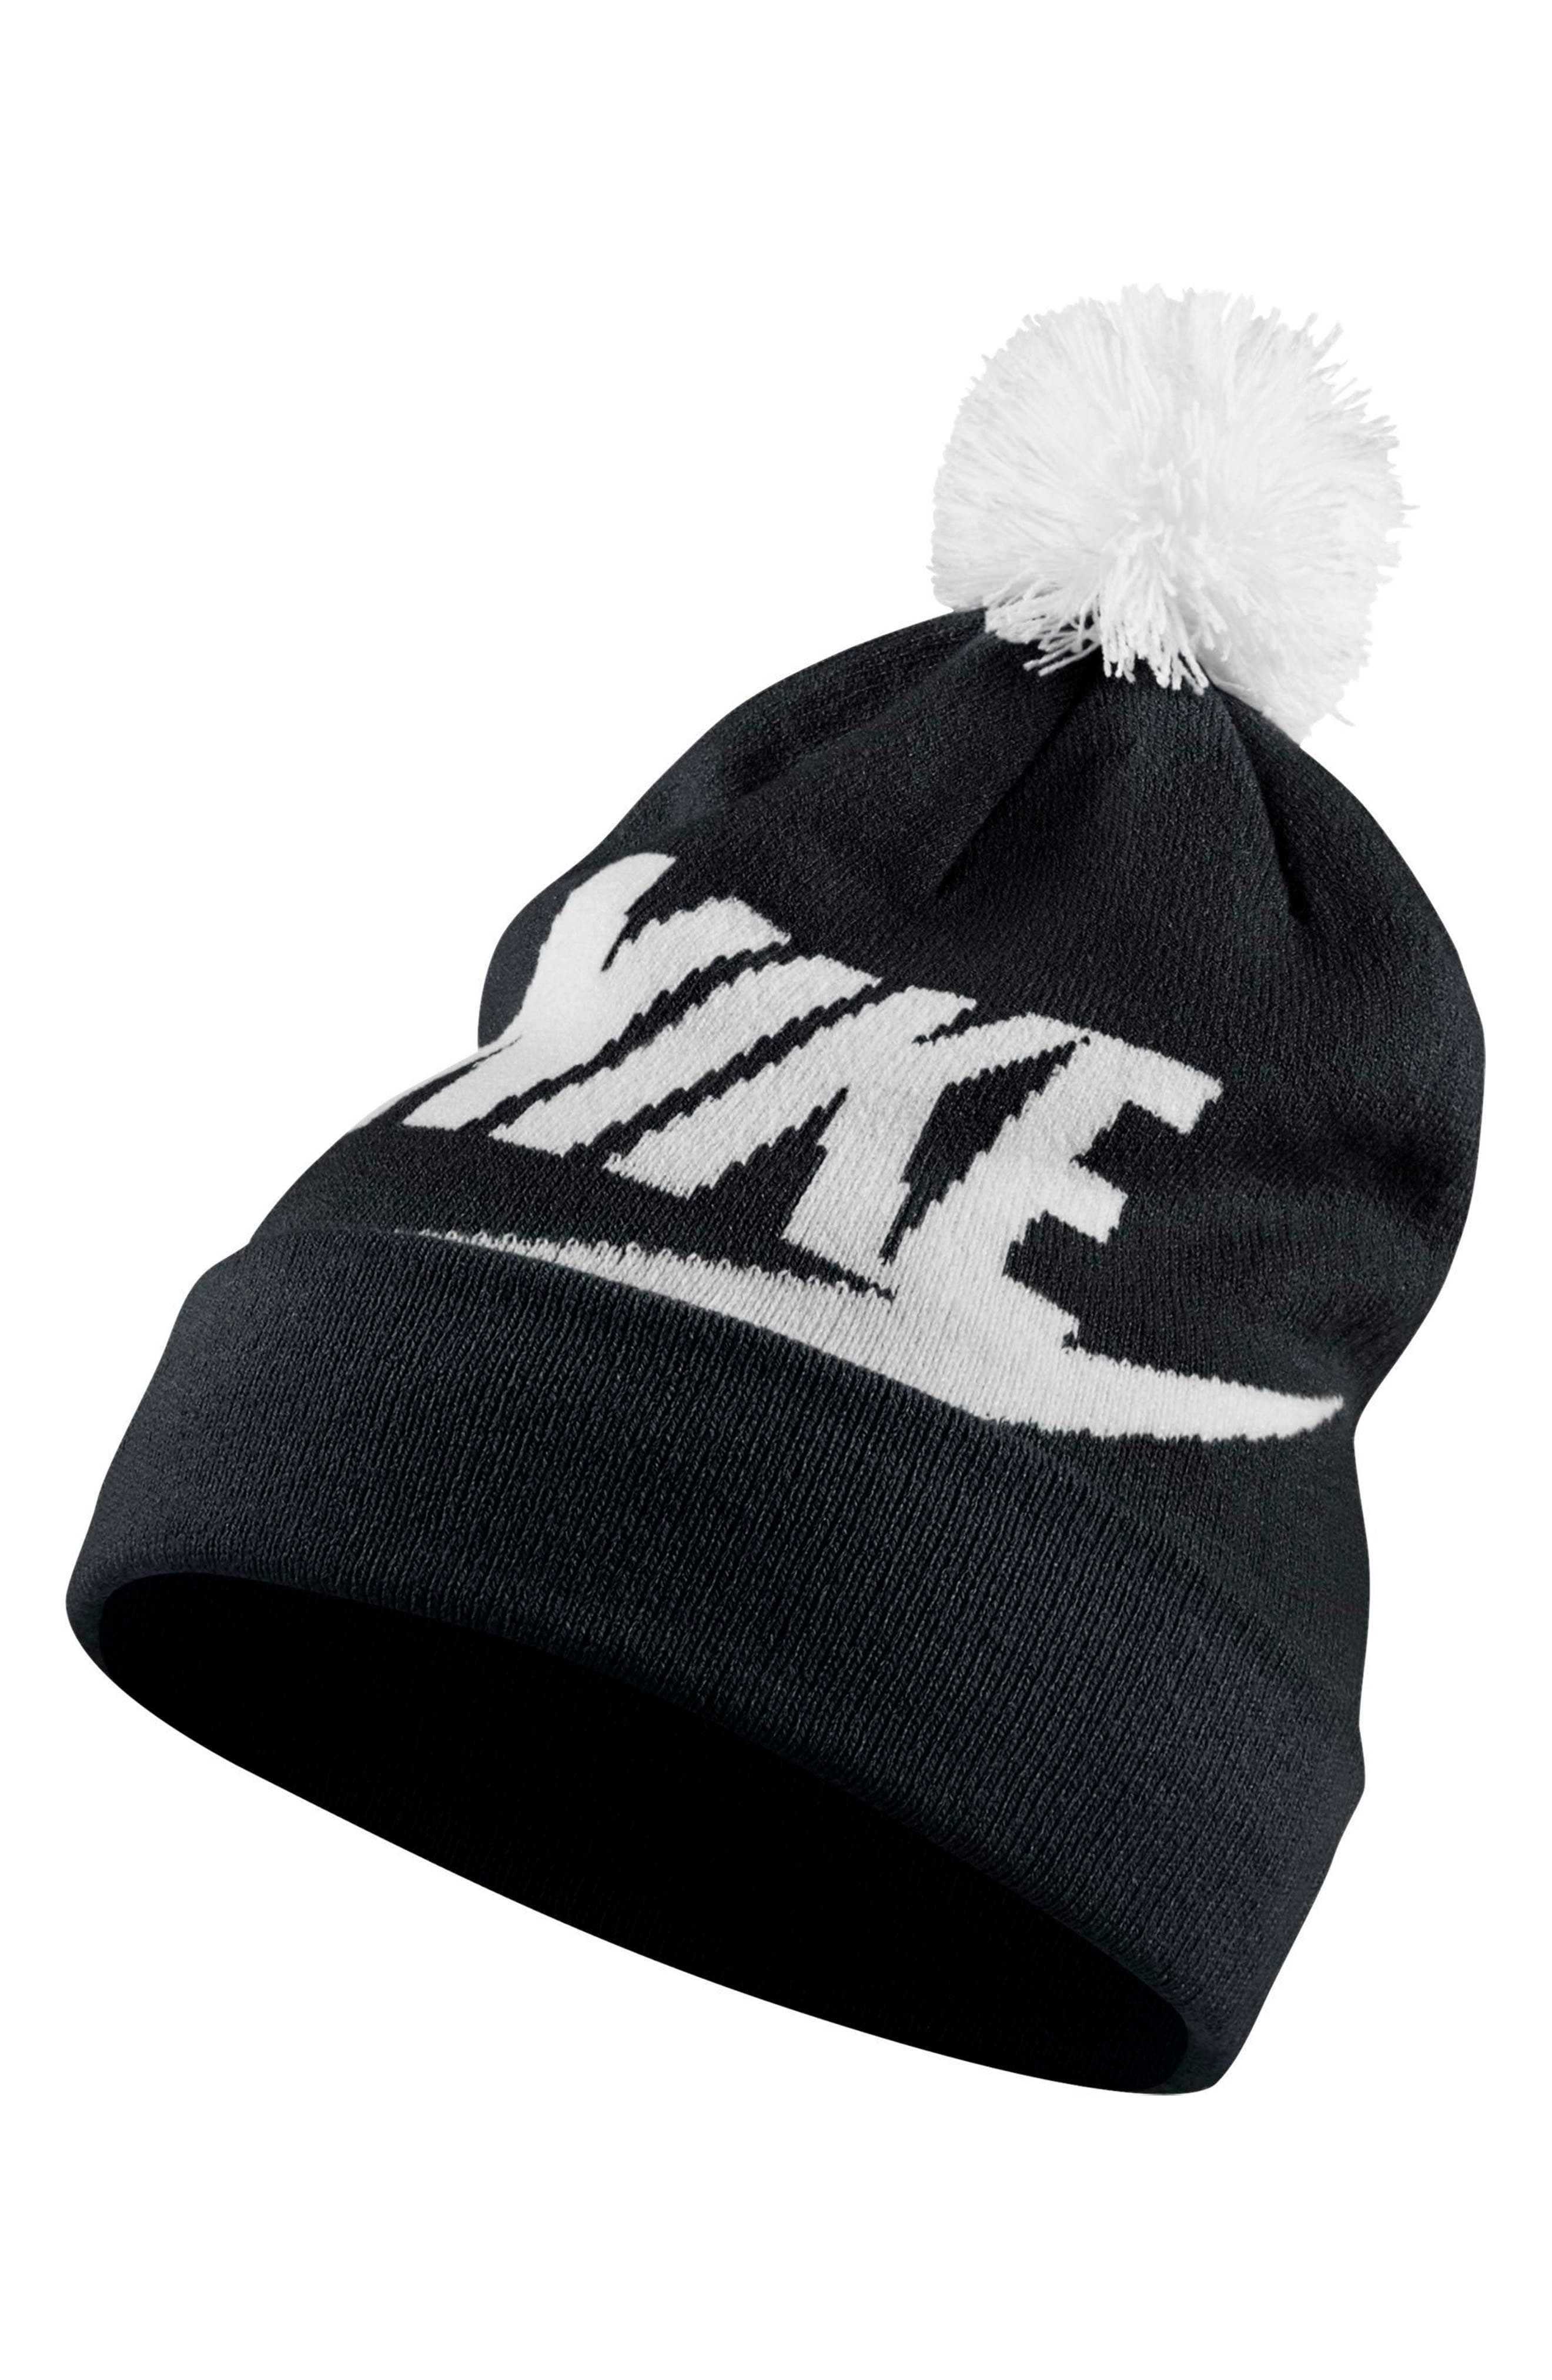 Sportswear Women's Beanie with Removable Pom,                             Main thumbnail 1, color,                             Black/ White/ White